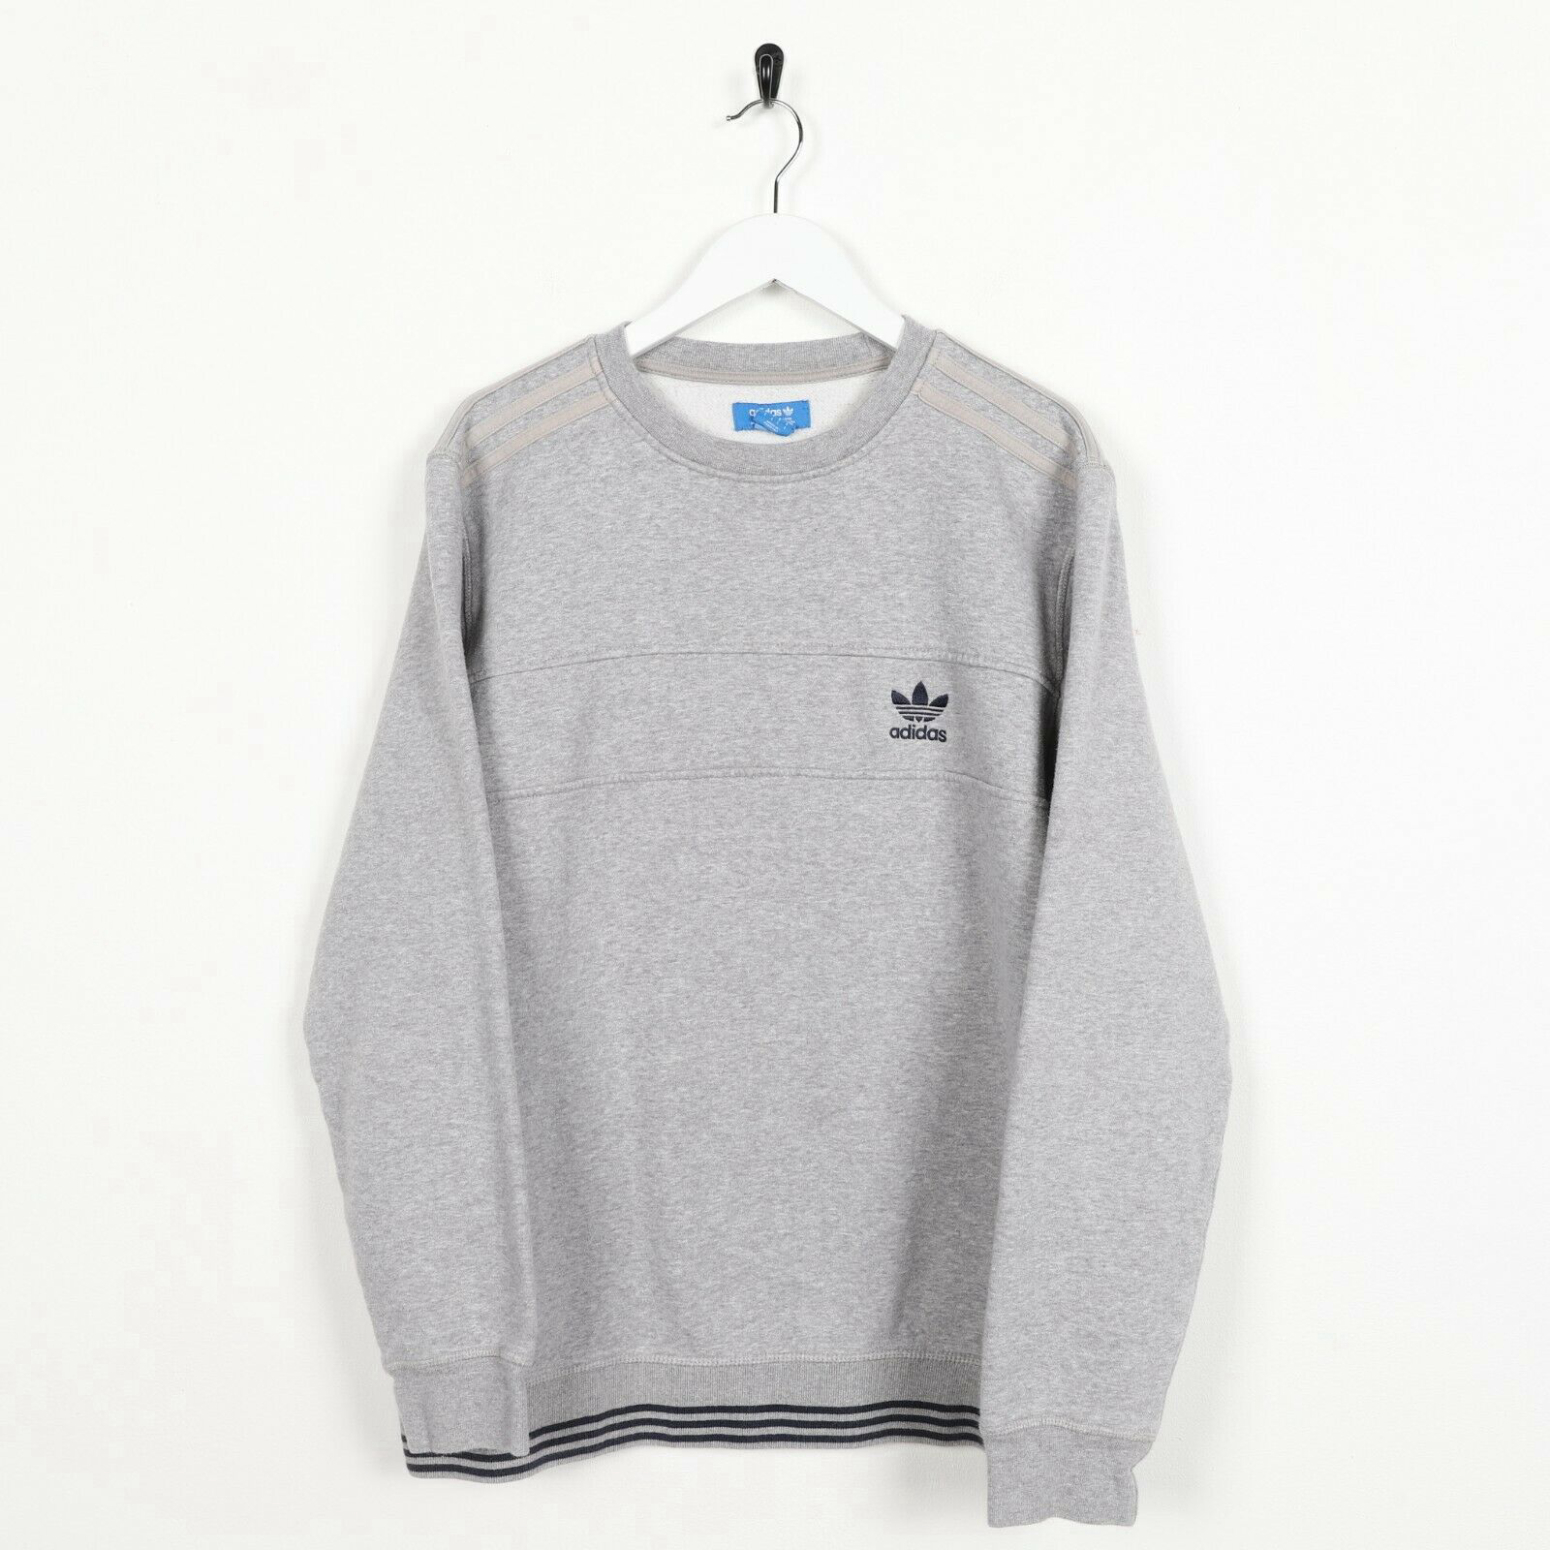 Unisex Vintage ADIDAS ORIGINALS Small Logo Sweatshirt Jumper Grey | Large L